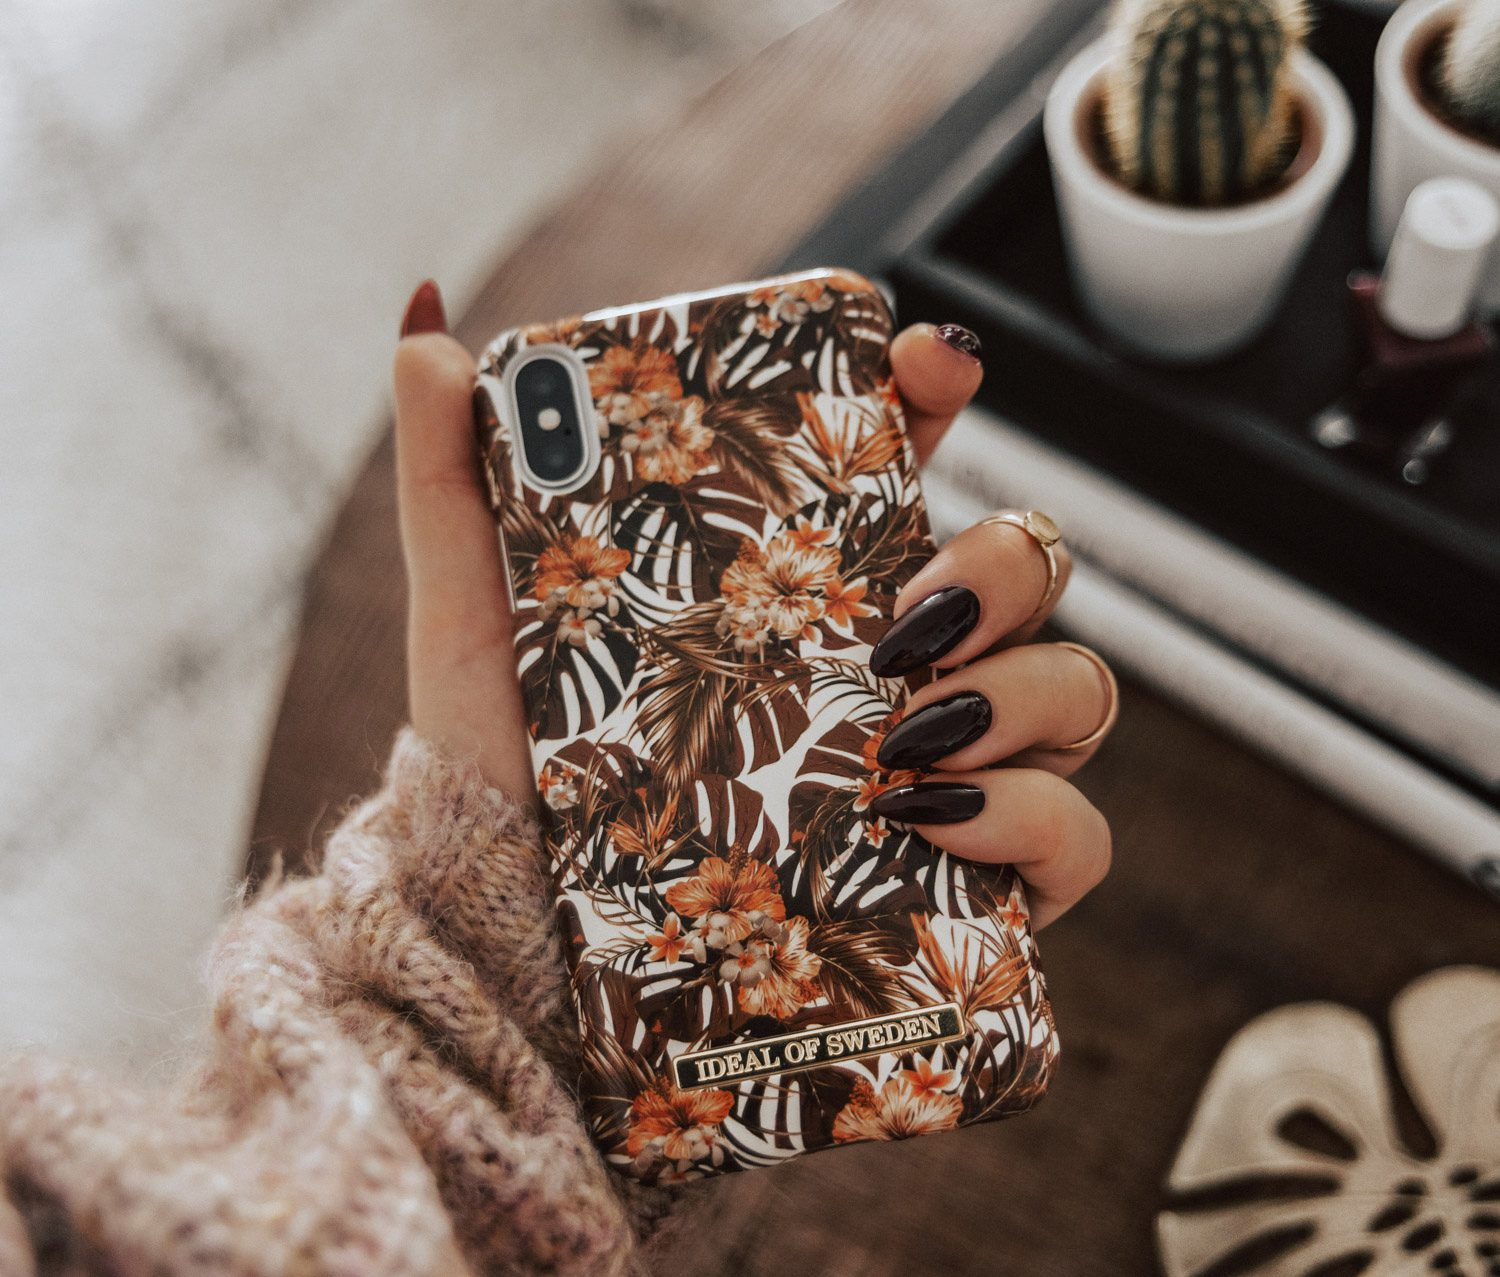 Ideal of Sweden Autumn Forest iPhone Case A/W18